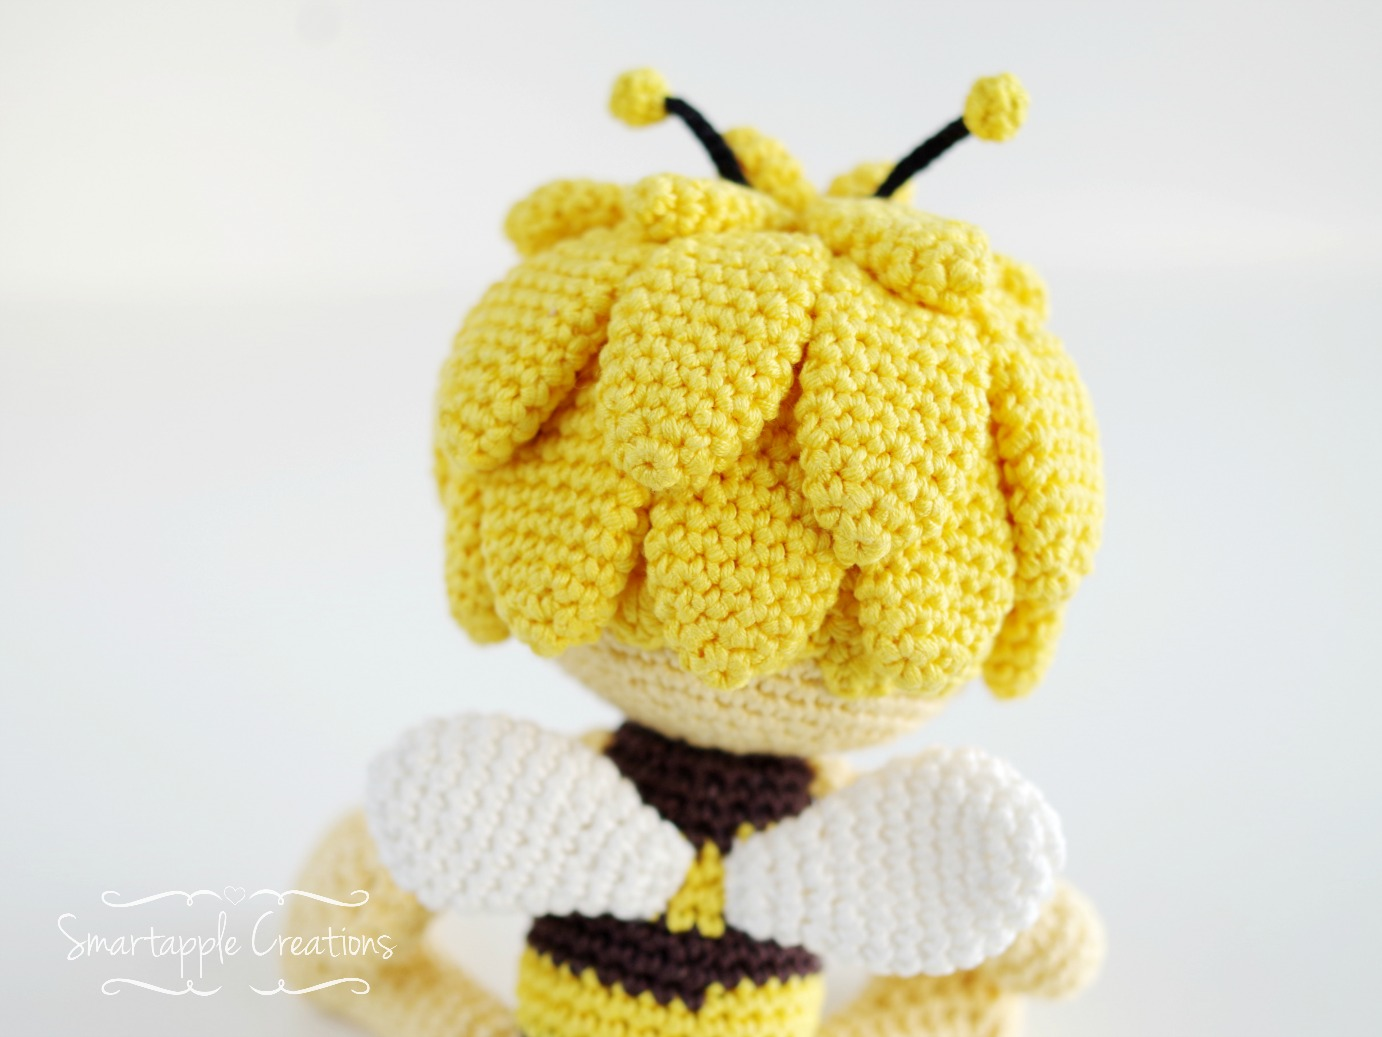 Amigurumi Basic Doll Pattern : Smartapple Creations - amigurumi and crochet: Maya the Bee